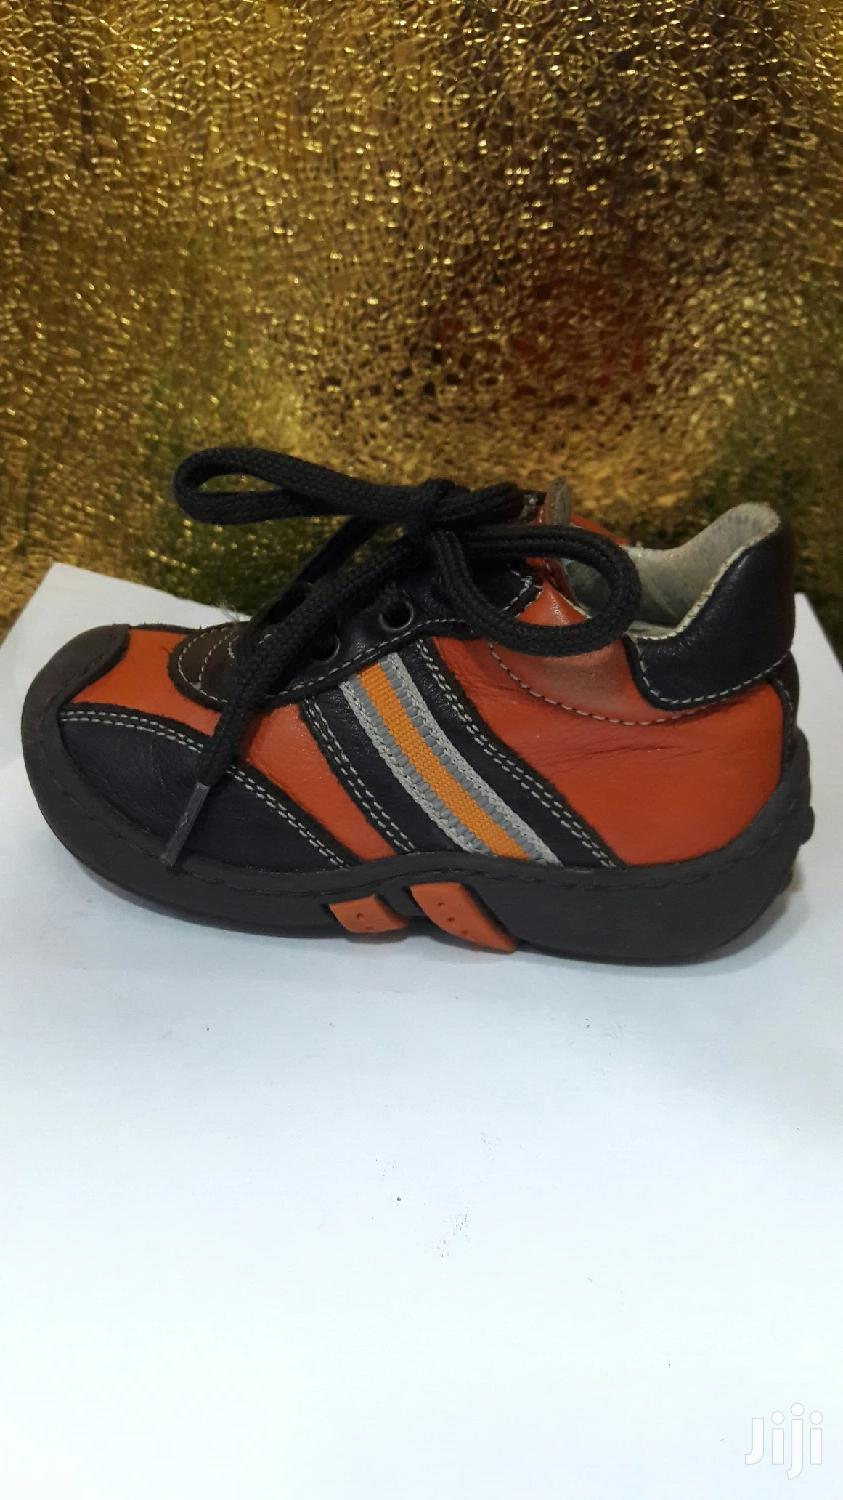 Baby Boy Shoes Size 22-23